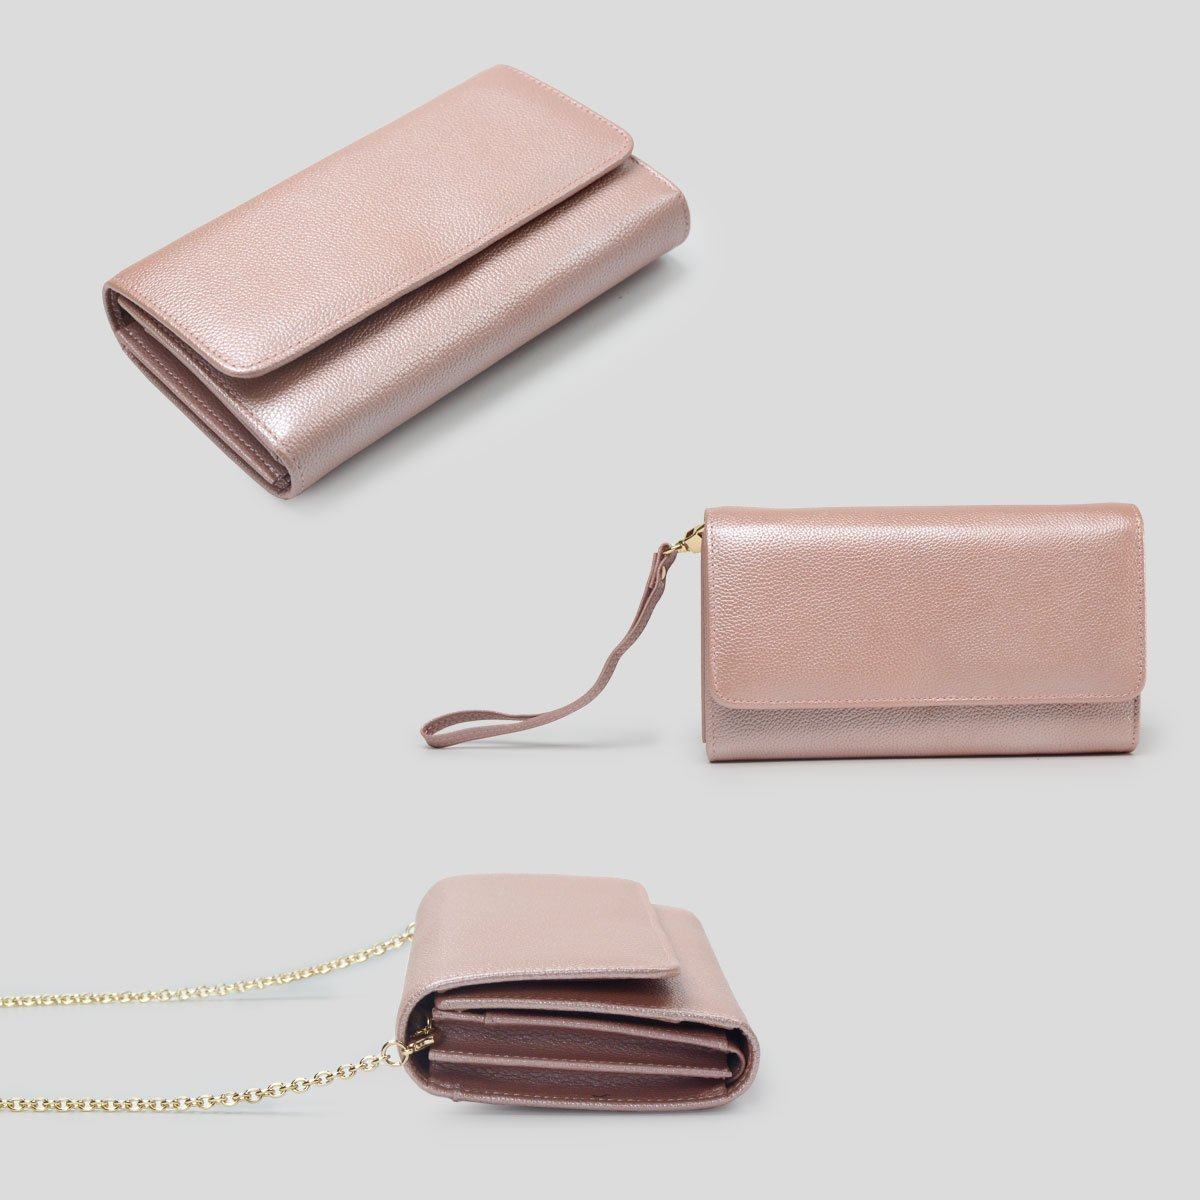 Women RFID Leather Trifold Wallet Cossbody Purse Clutch with Chain Strap (Rose Gold) by Bveyzi (Image #6)